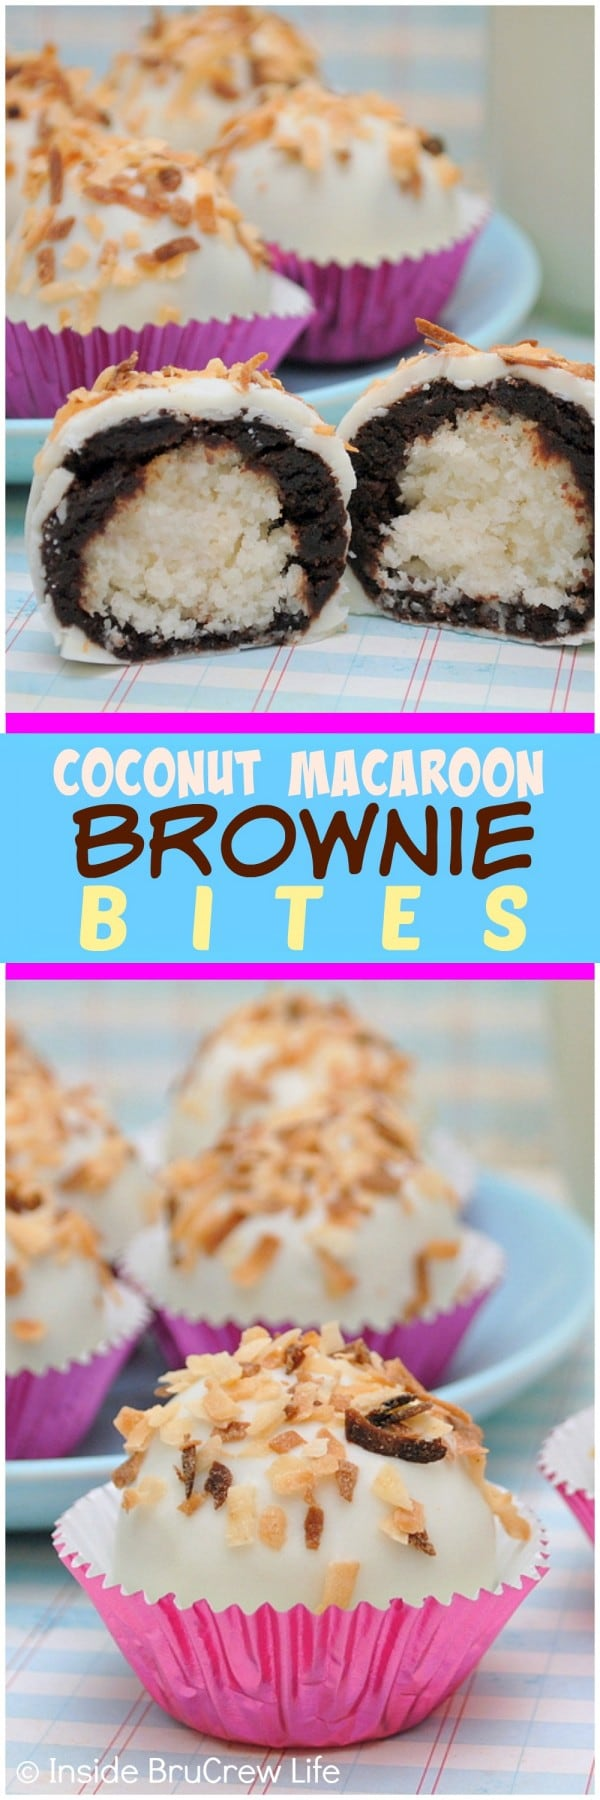 Hiding coconut candies or truffles inside brownies makes these Coconut Macaroon Brownie Bites perfect for dessert snacking! Great Easter recipe!